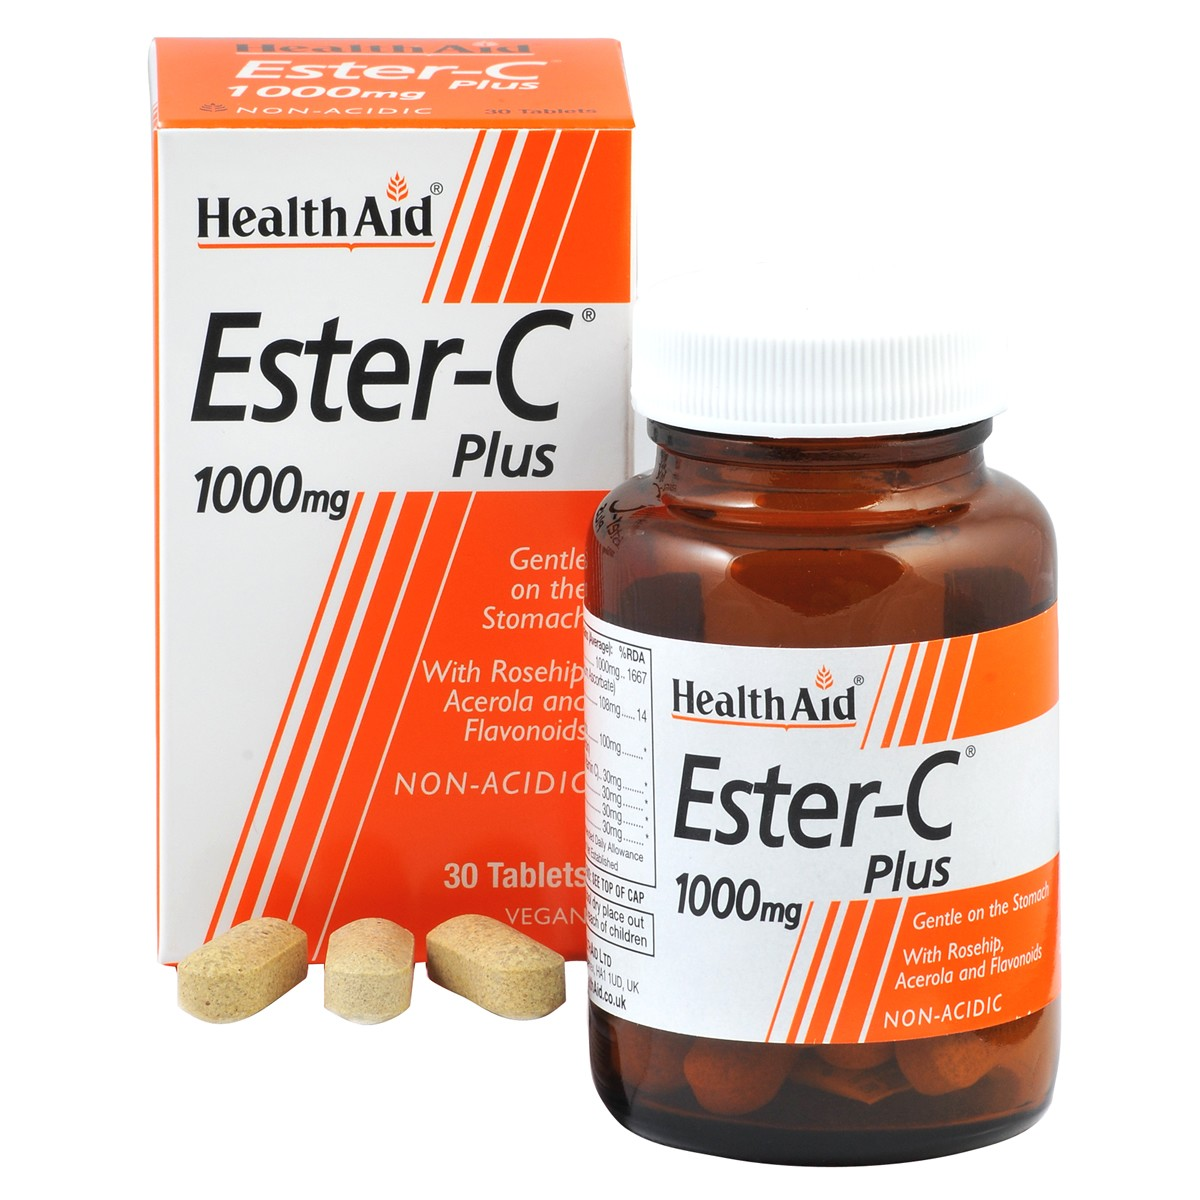 HealthAid Ester-C Plus 1000mg